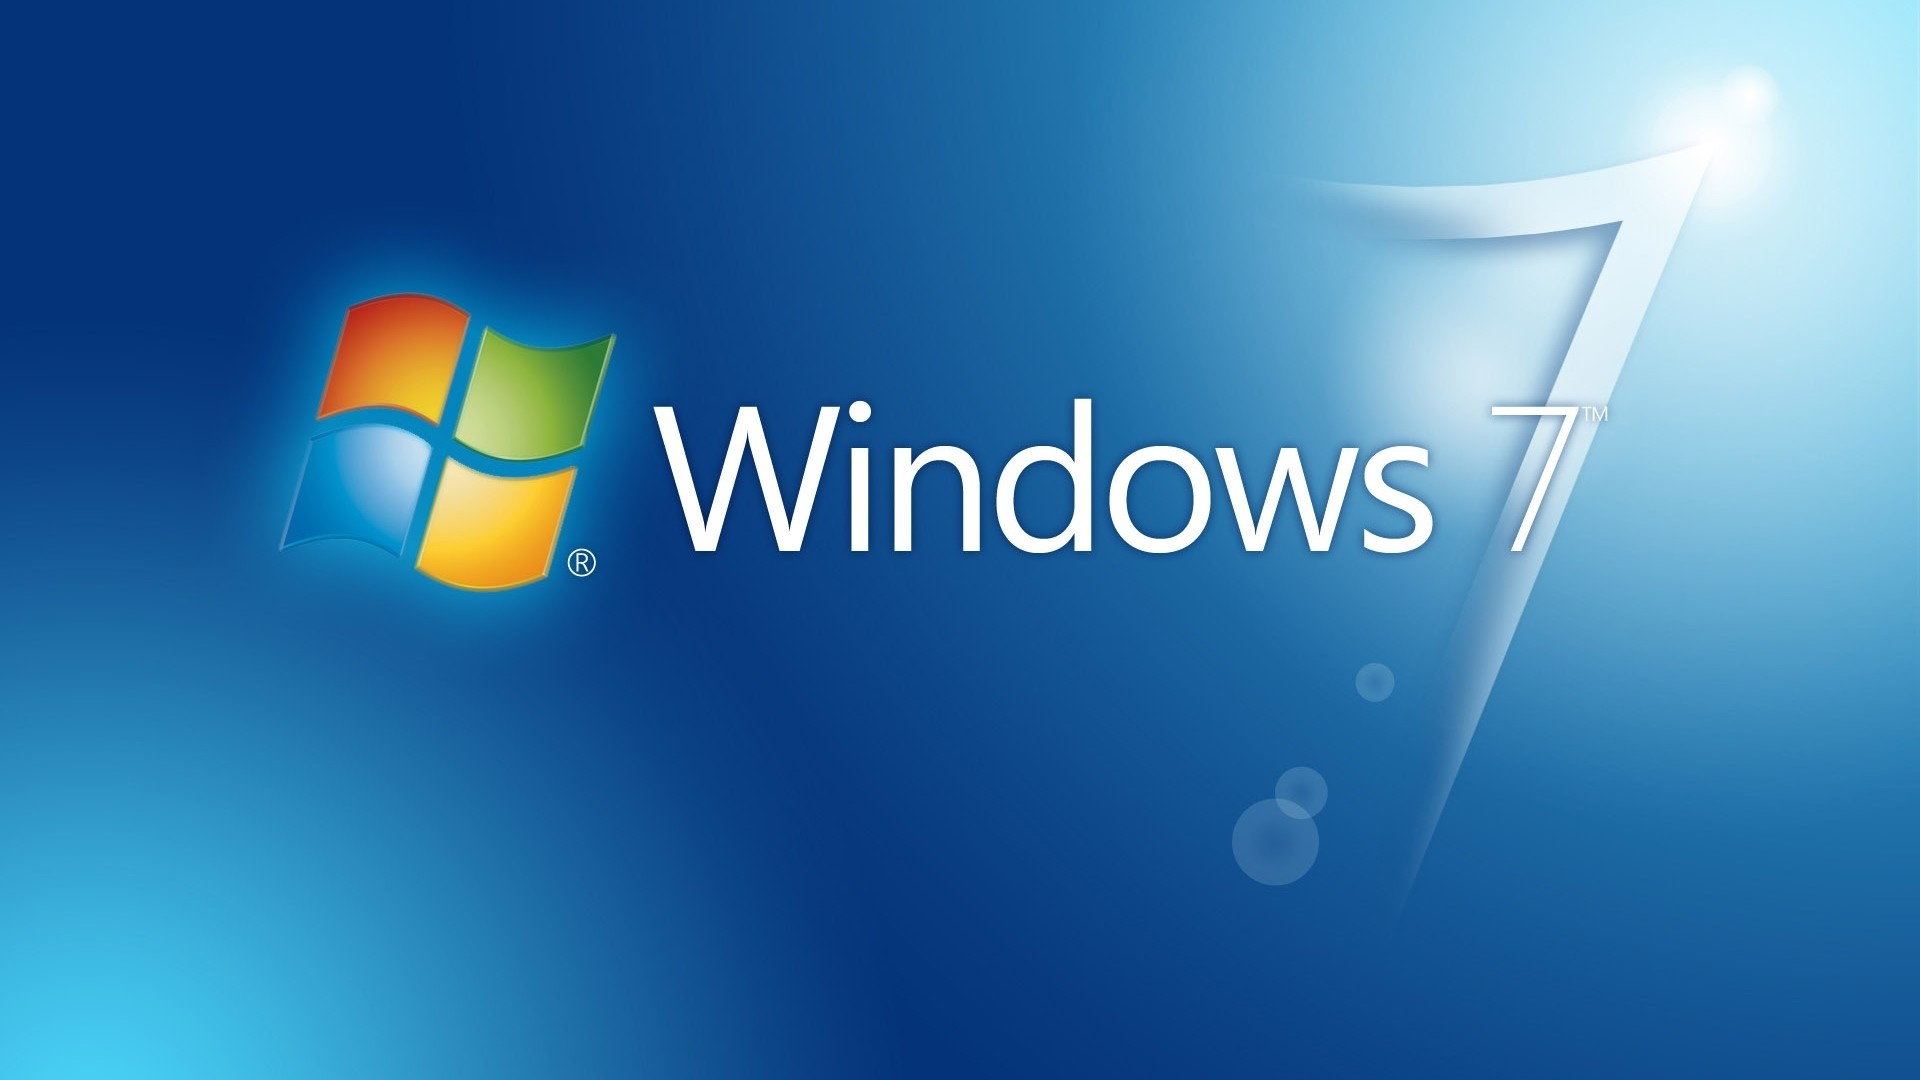 Windows 7 Background Desktop 62 images 1920x1080